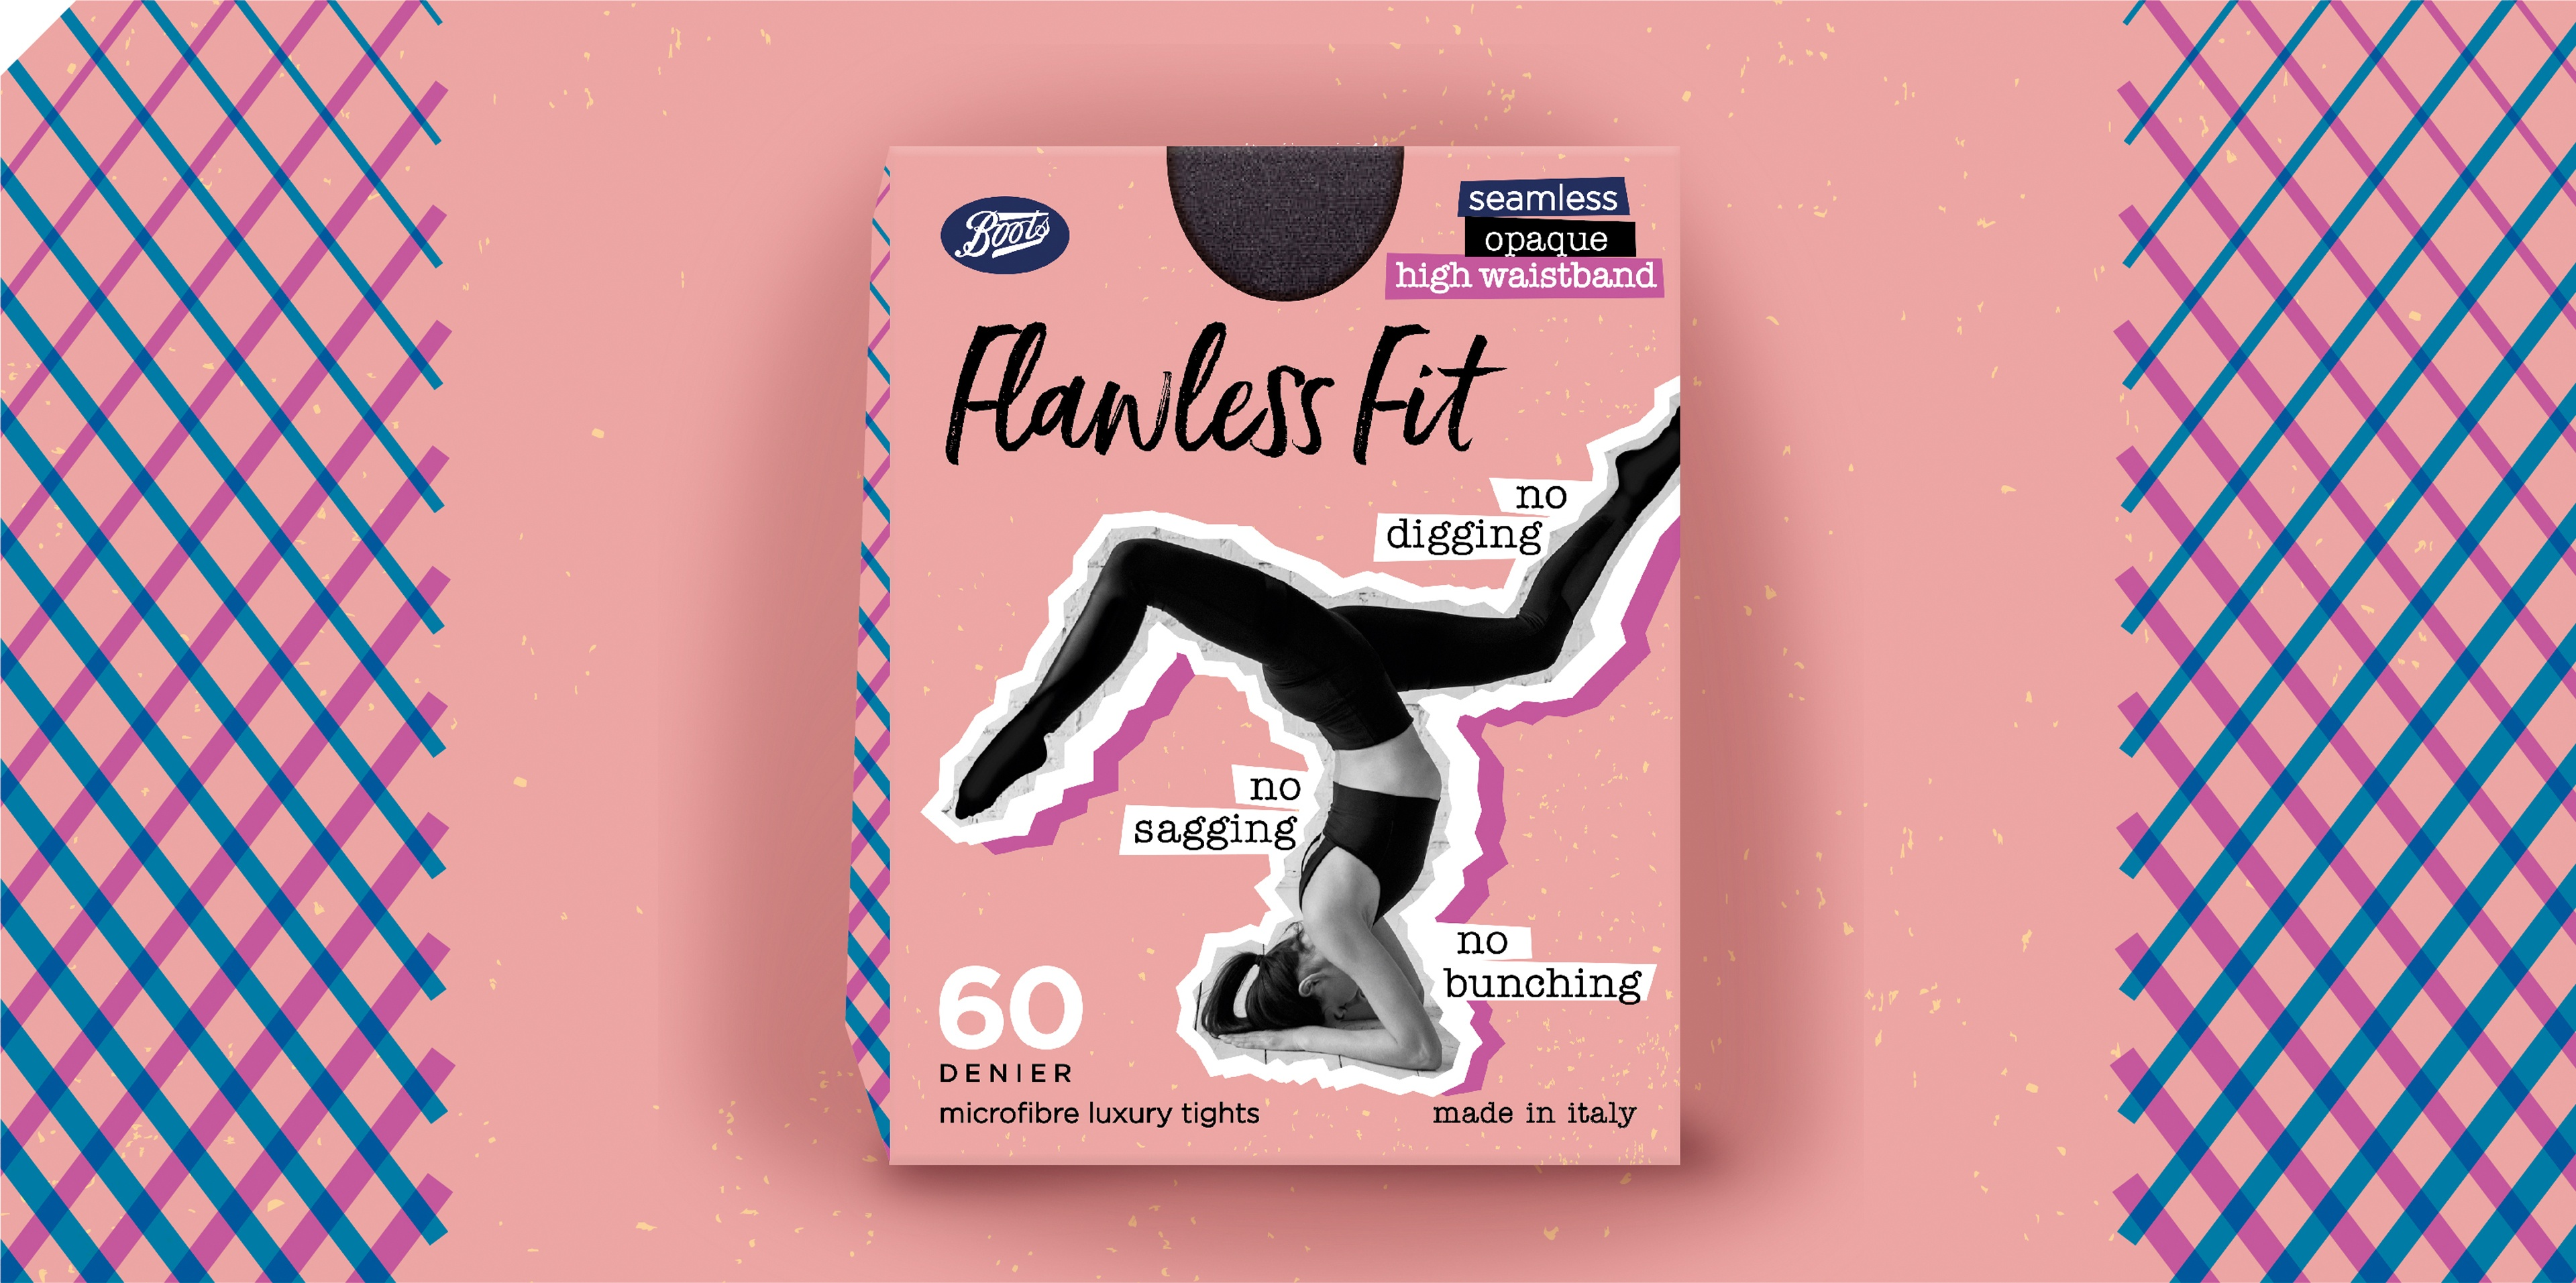 Brand on Shelf - Work - Boots - Flawless Fit Tights 60 Denier